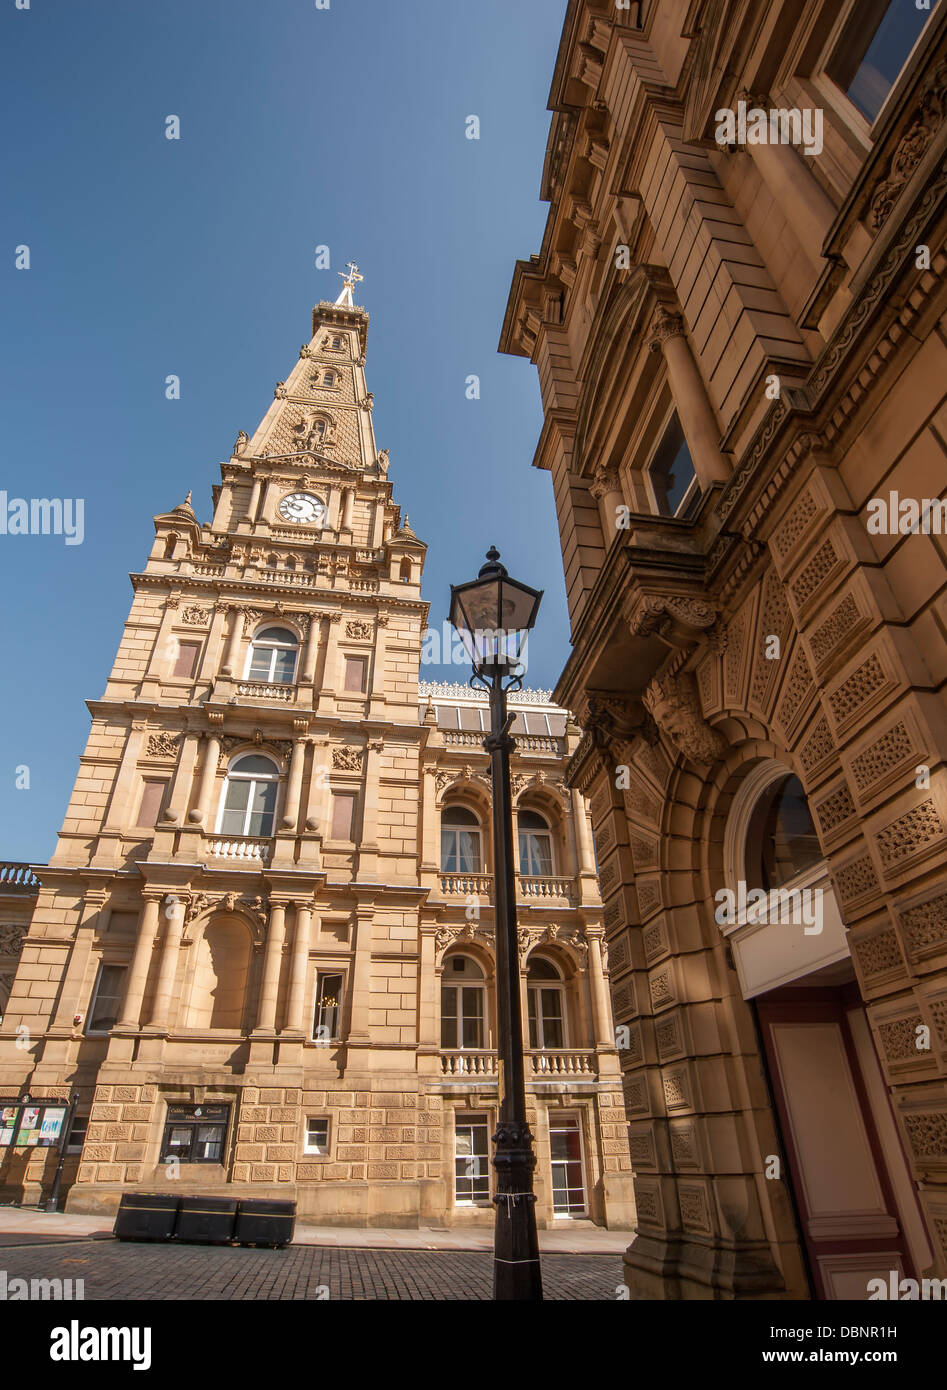 the impressive south facade of Halifax's sandstone built town hall - Stock Image